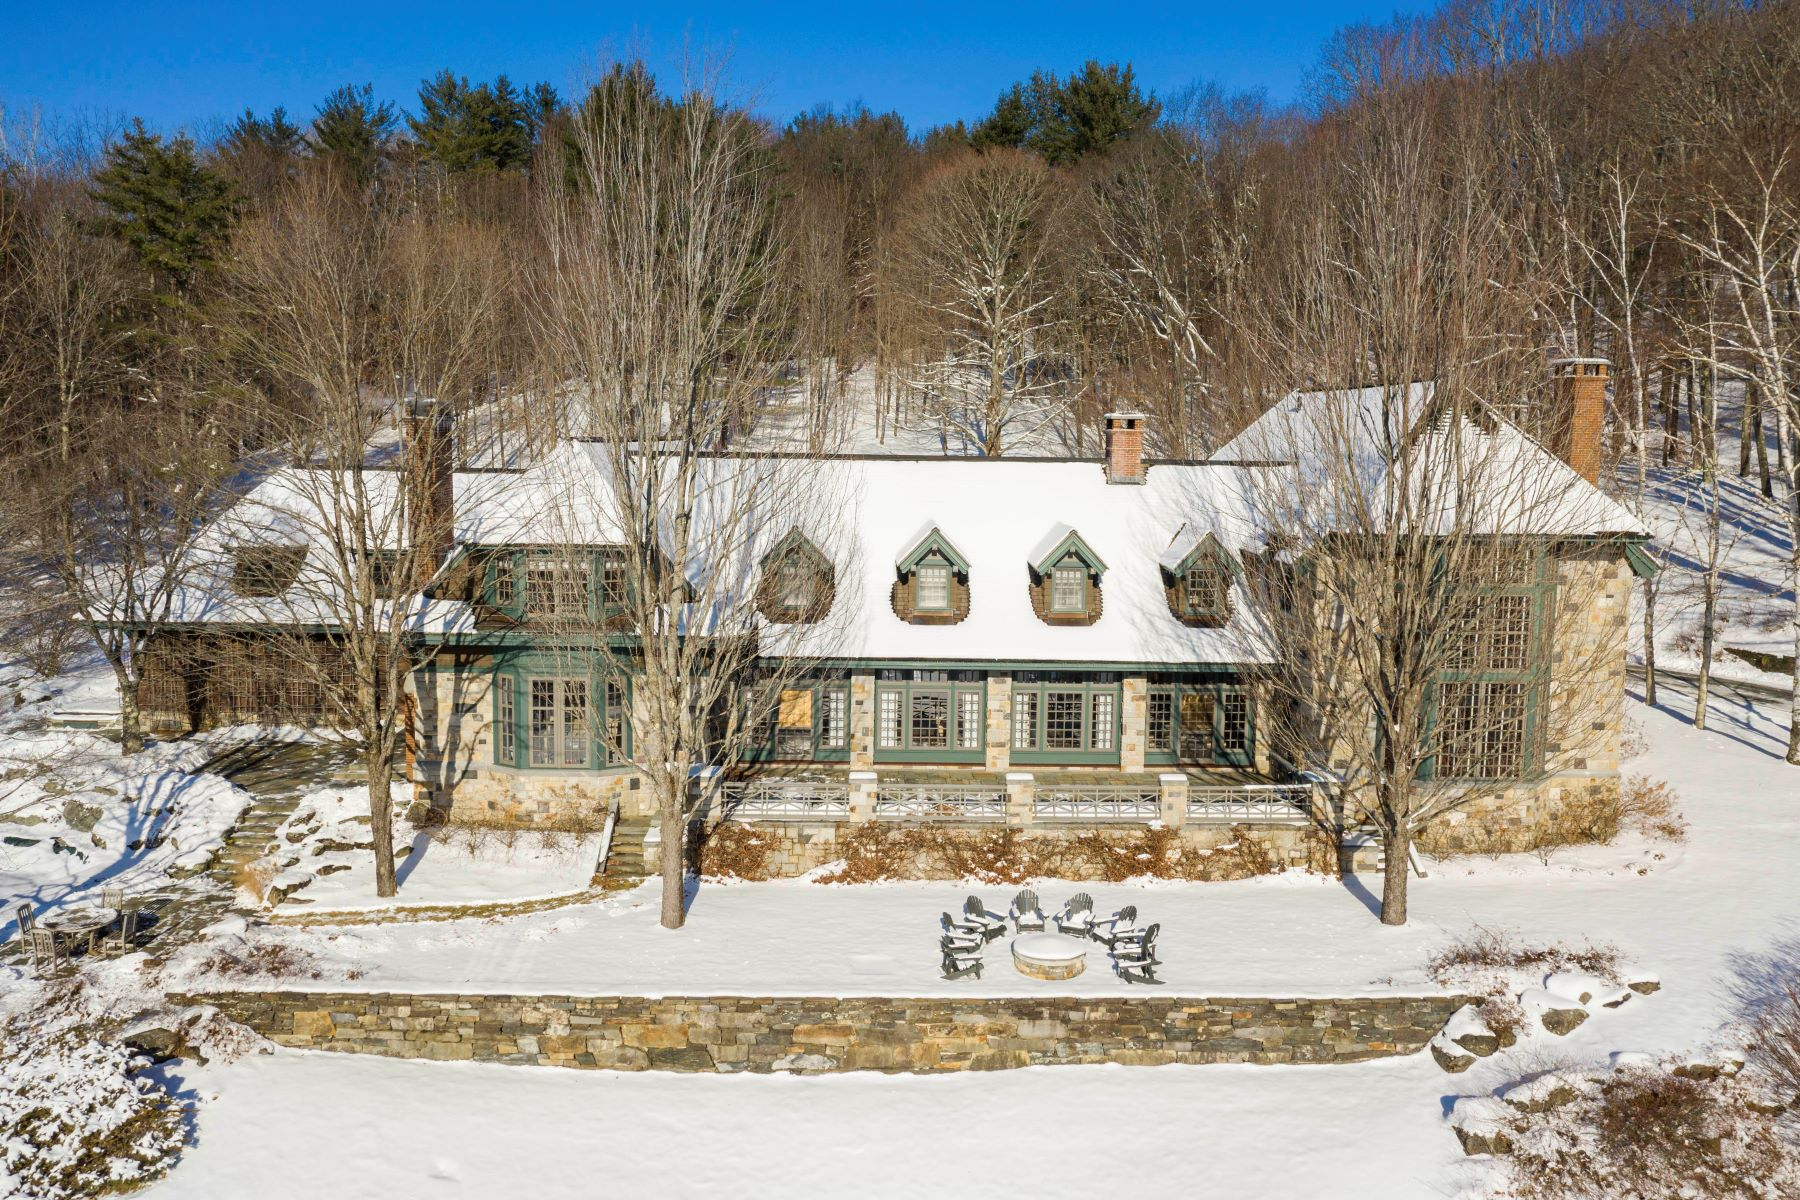 Single Family Homes for Sale at Stonehill Farm 1403 Quechee West Hartford Rd Hartford, Vermont 05059 United States